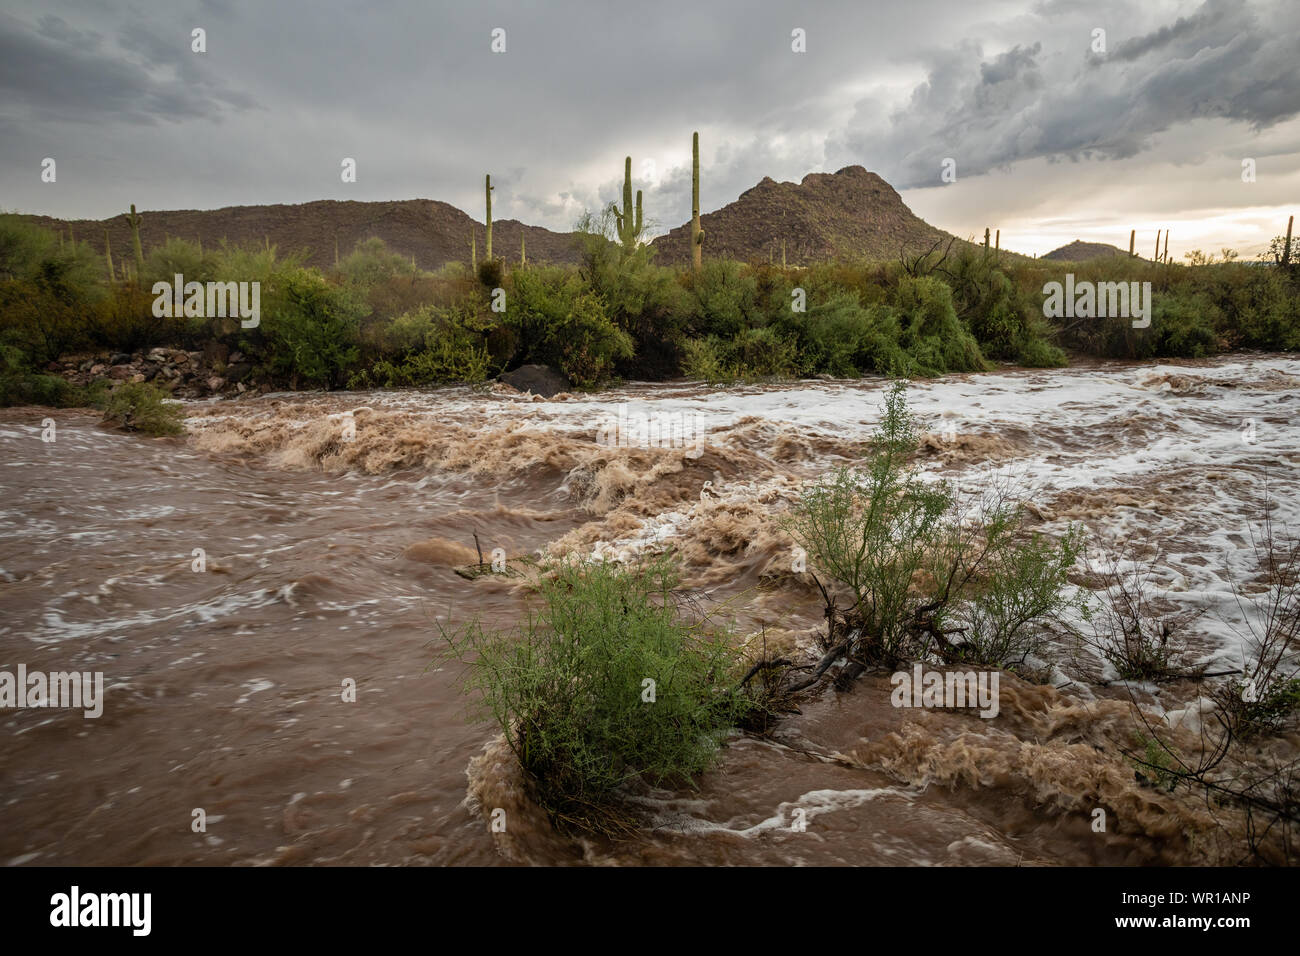 Flash flooding on a desert arroyo after a strong Monsoon Season thunderstorm in Organ Pipe Cactus National Monument, Pima County, Arizona, USA Stock Photo